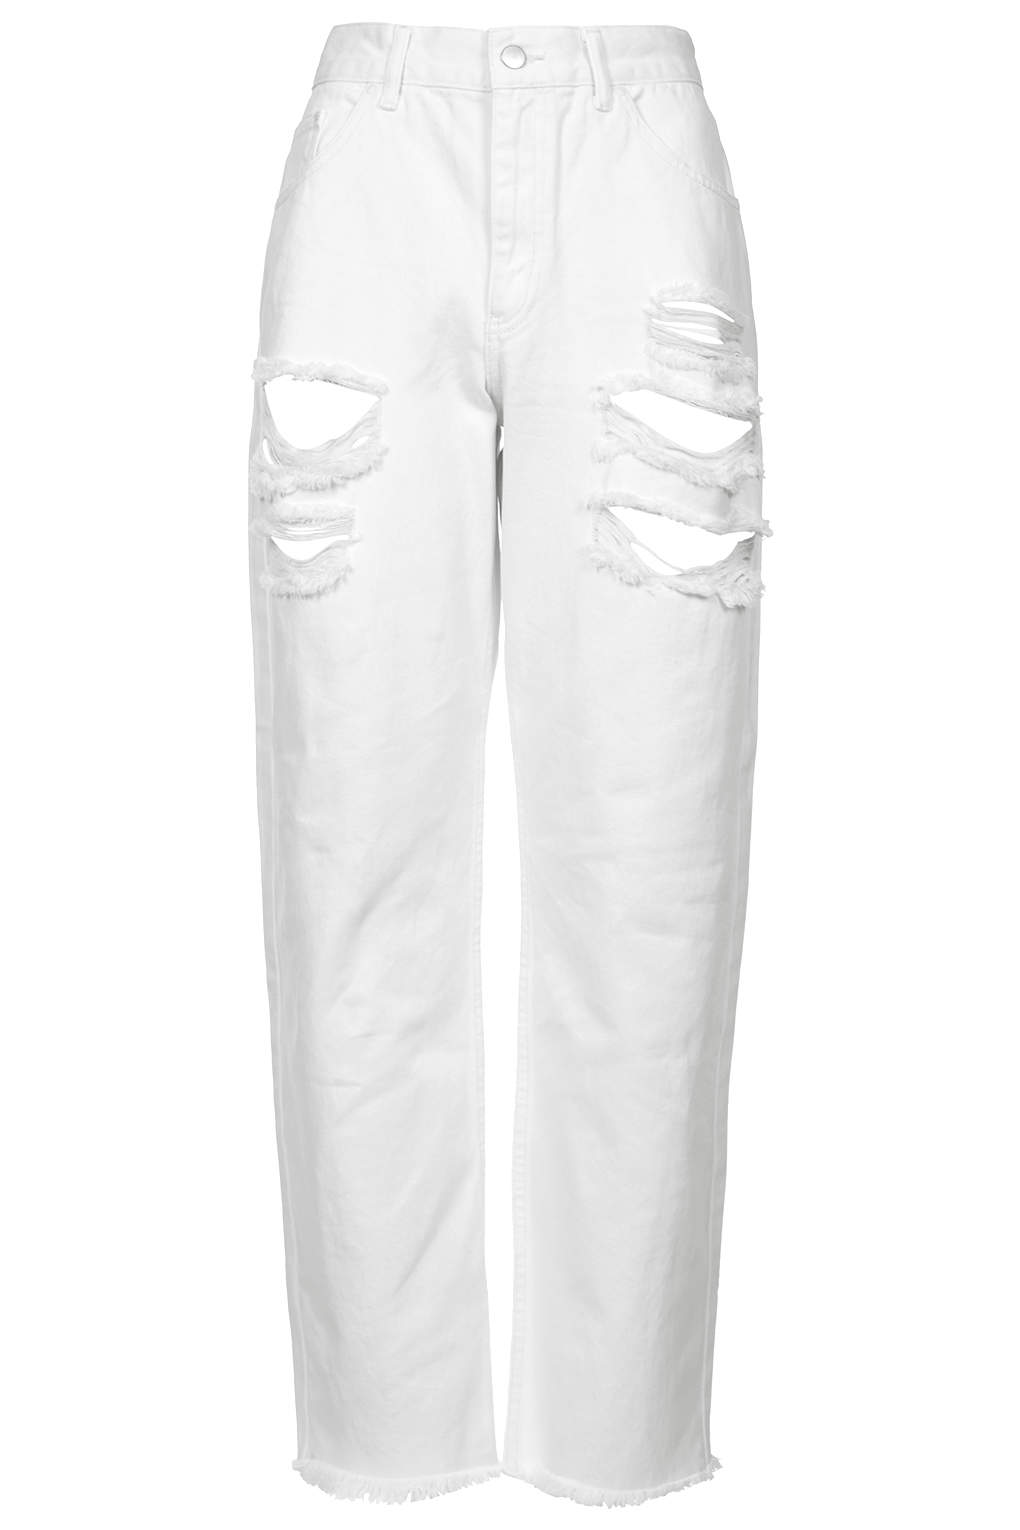 **low rise ripped boyfriend jeans by marques'almeida x topshop